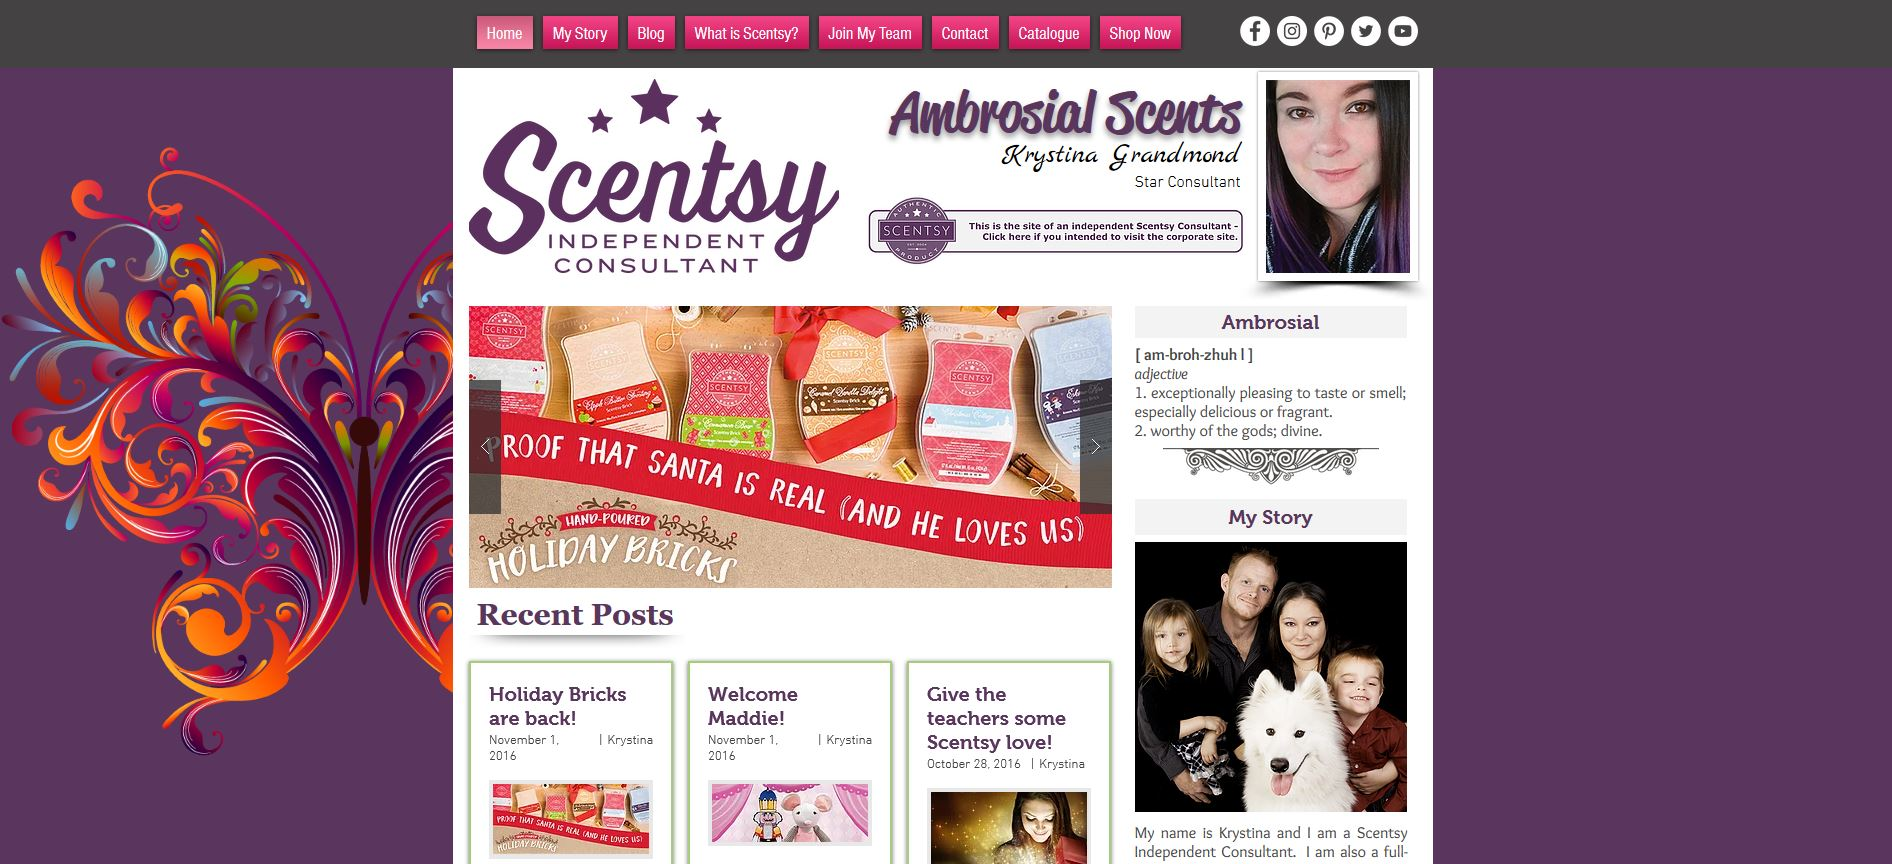 AMBROSIAL SCENTS